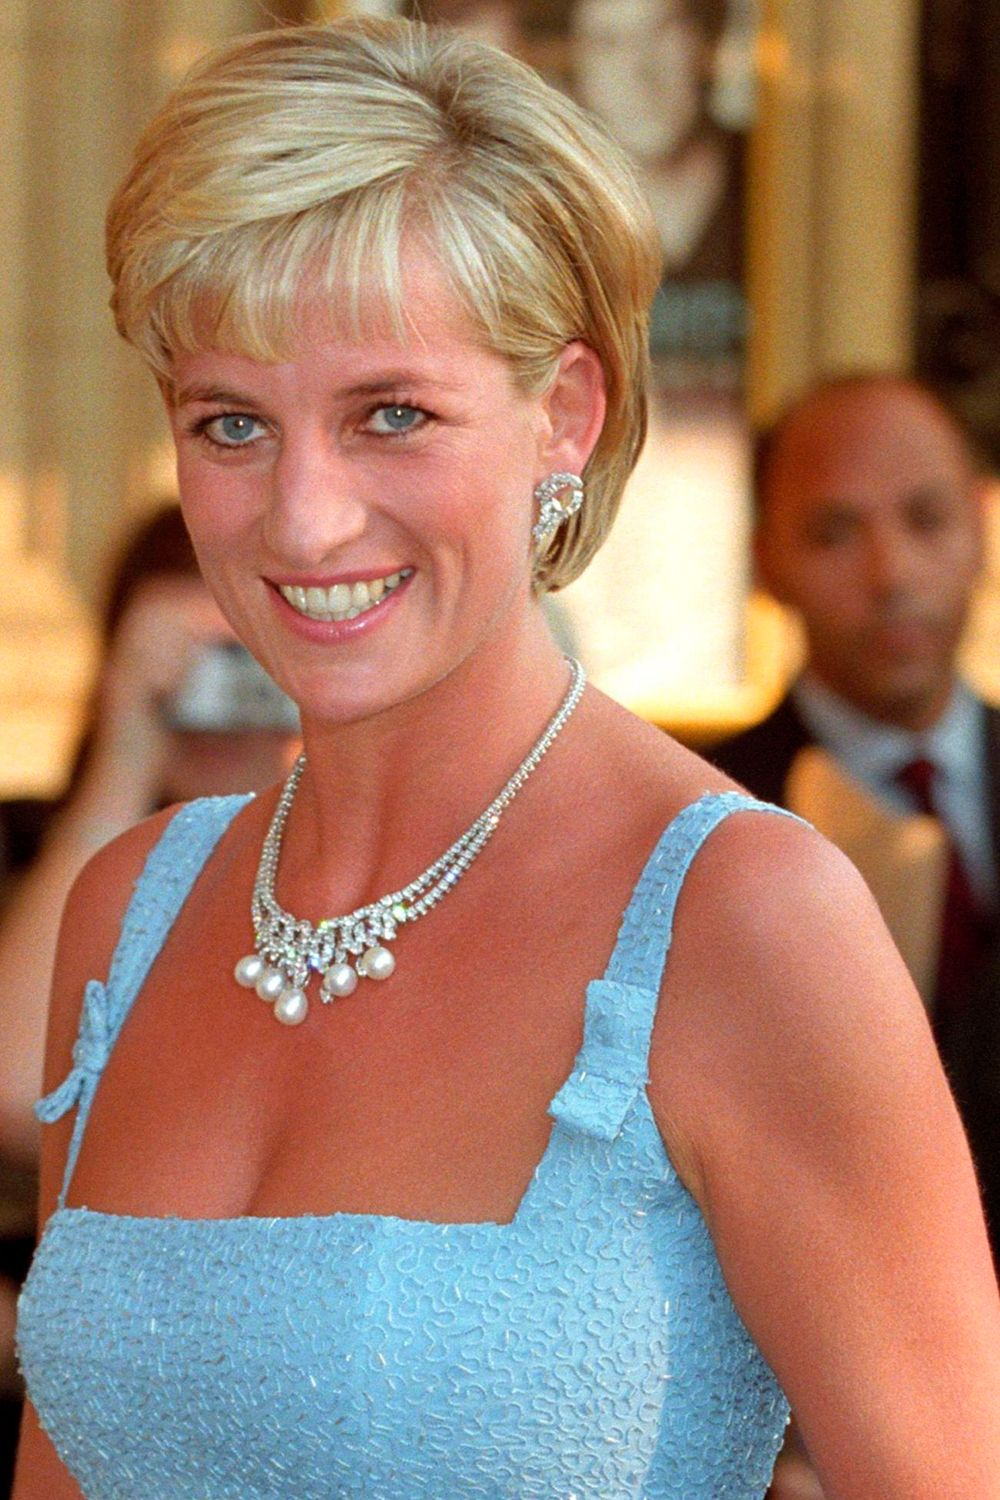 Princess Dianas Iconic Diamond And Pearl Necklace Is Up For